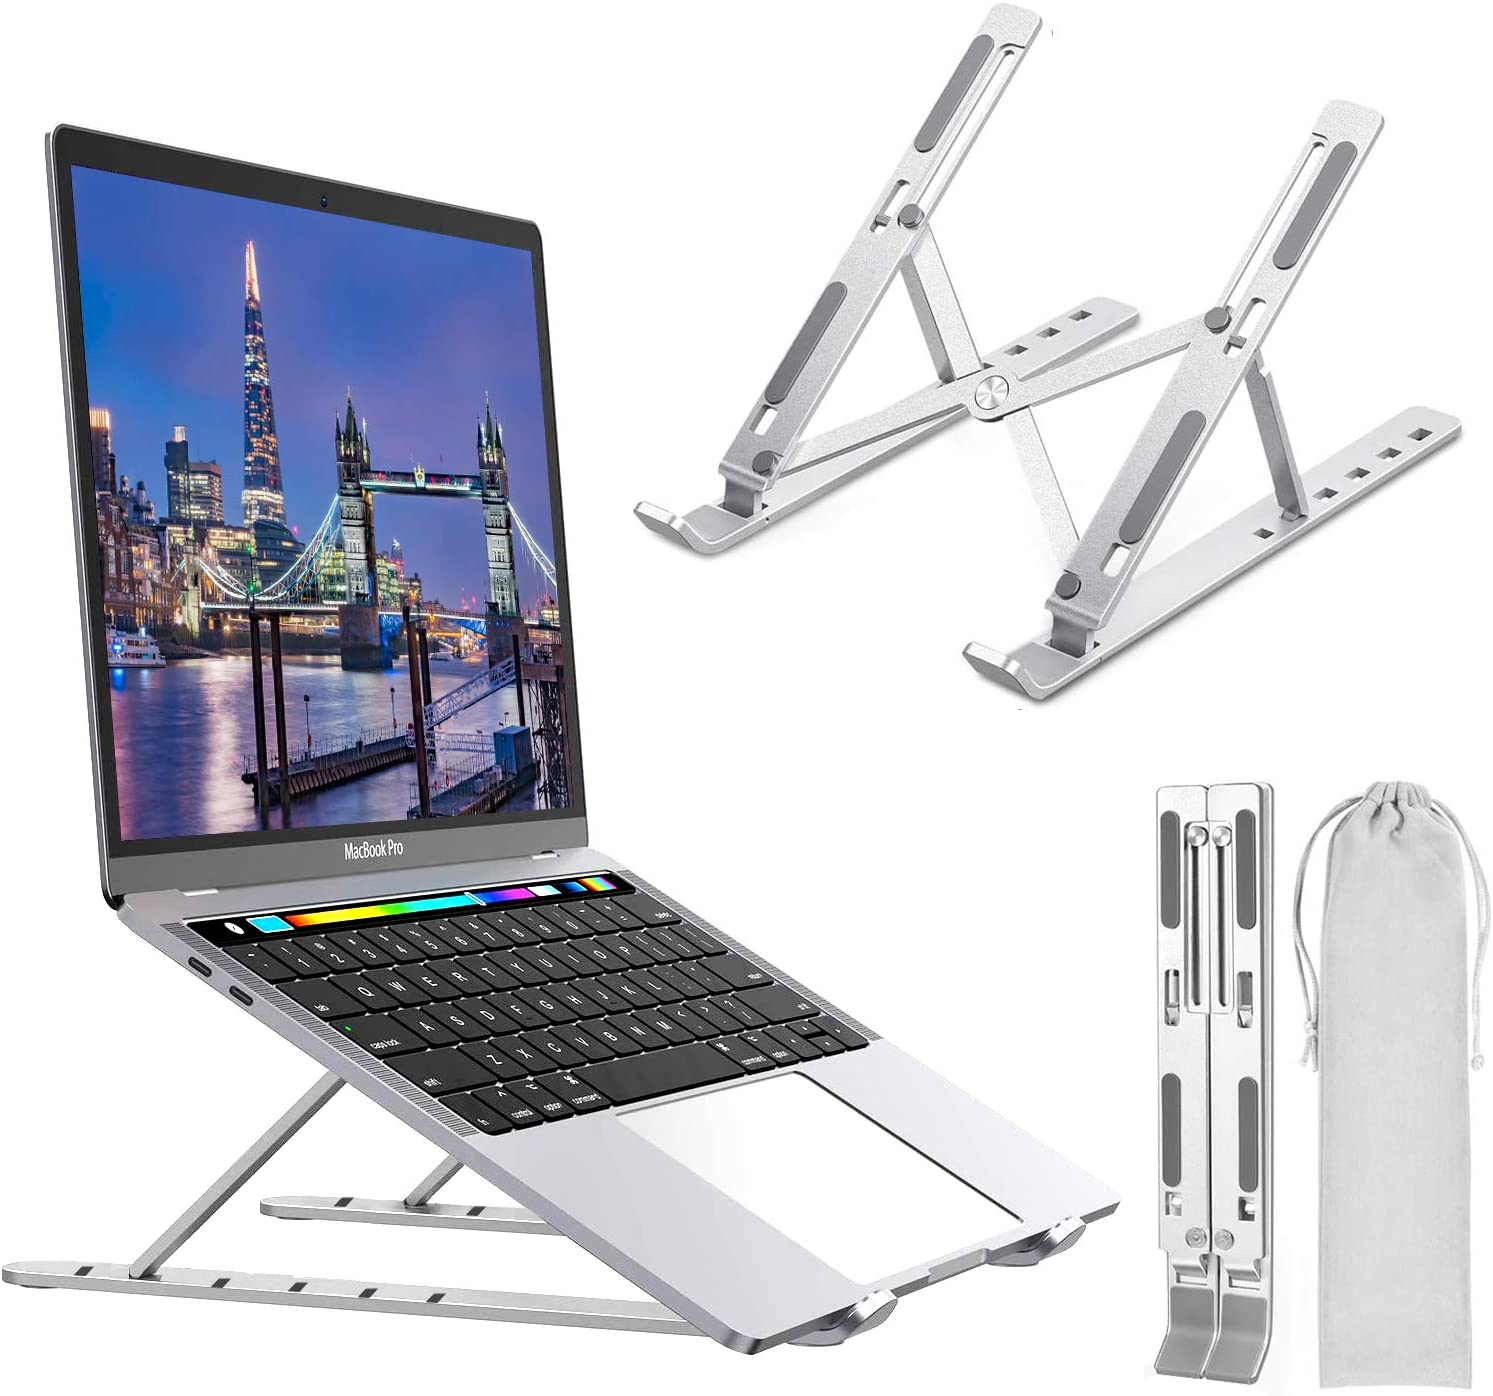 Laptop Stand, Topwey 6 Angles Adjustable Laptop Holder Laptop Riser Compatible with 10-16inch Laptops, Aluminum Ventilated Adjustable Laptop Stand for Desk for MacBook, HP, Lenovo, DELL, Sony, iPad